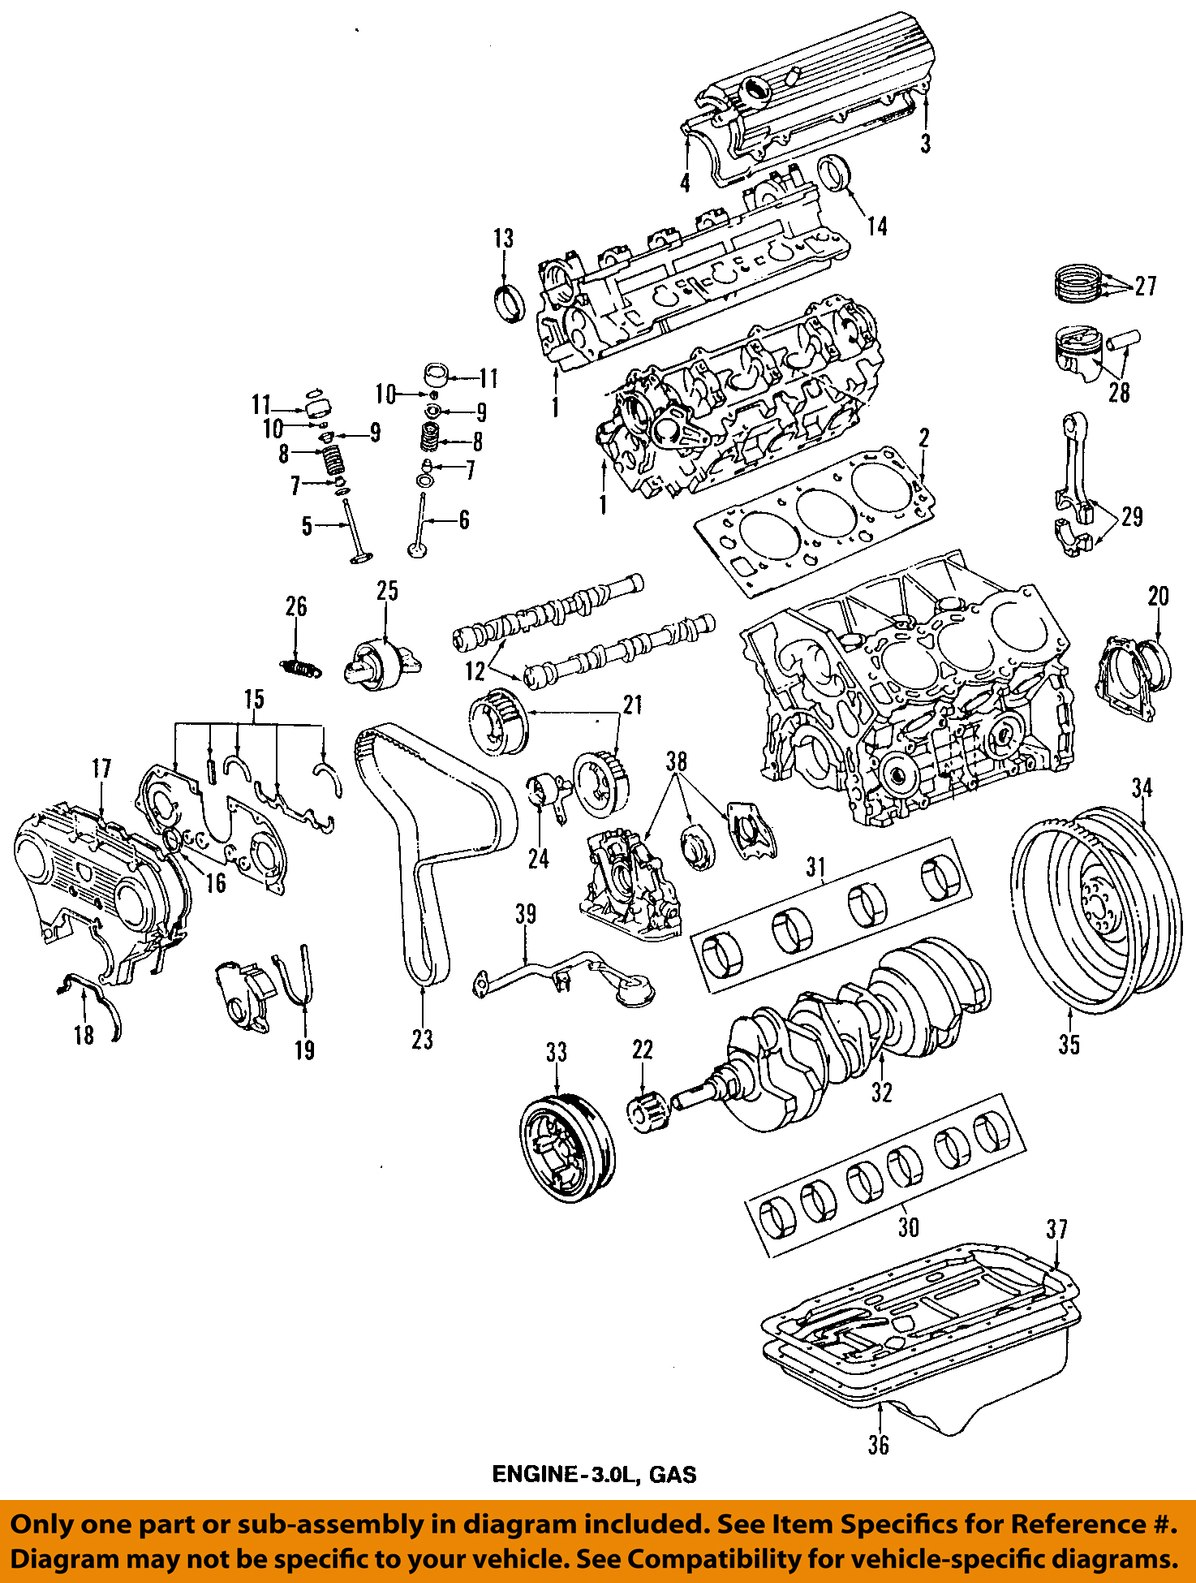 Toyota Engine Oil Diagram Wiring Diagrams 93 Camry Parts Oem 98 T100 Pan 1210165012 Ebay